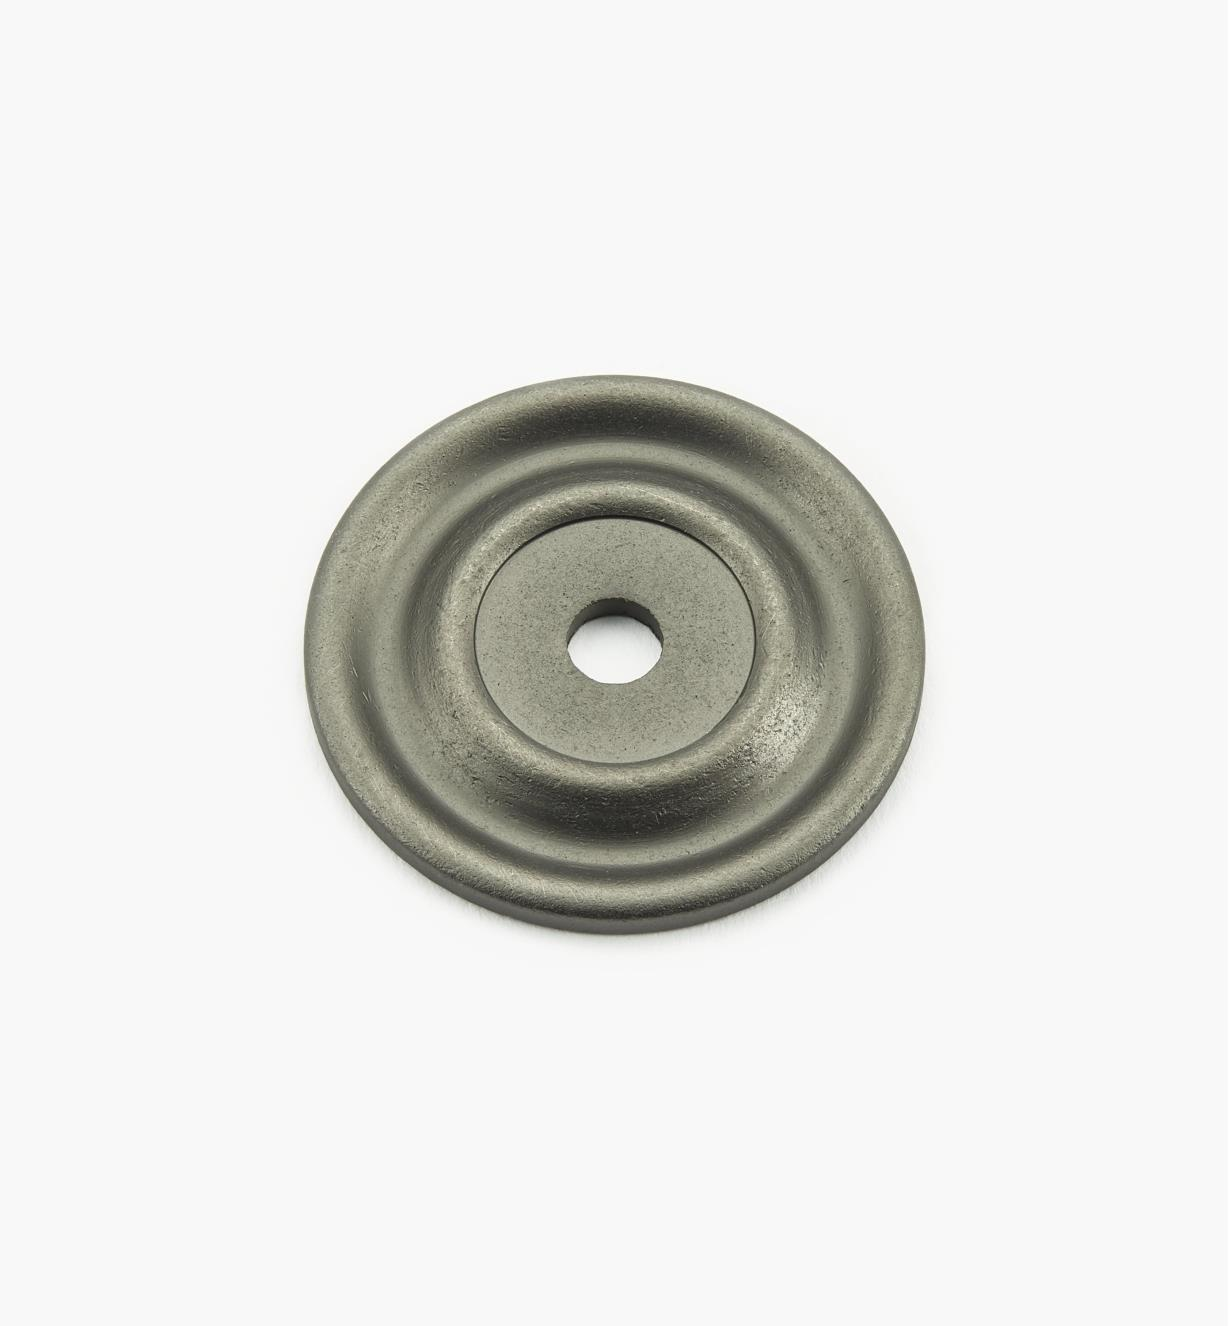 "02W3331 - Pewter Suite - 1 5/8"" Knob Escutcheons"